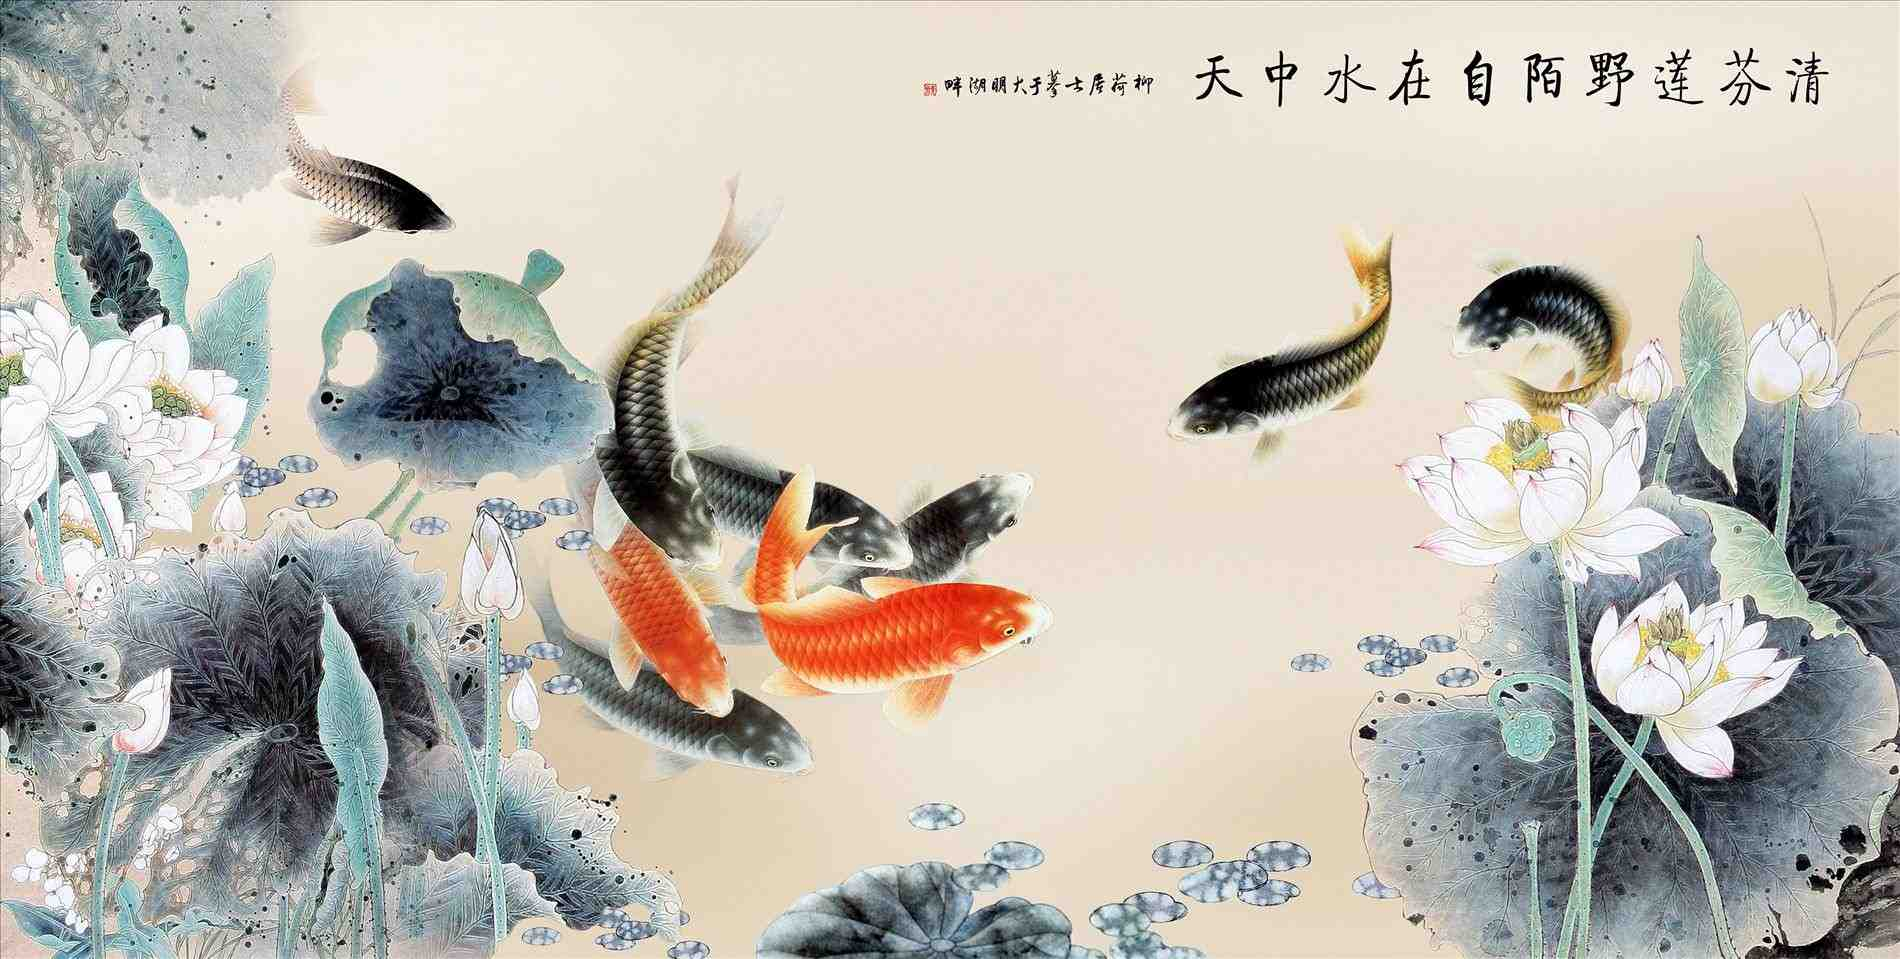 40 Exceptional Japanese Painting and Art Examples |Japanese Koi Painting